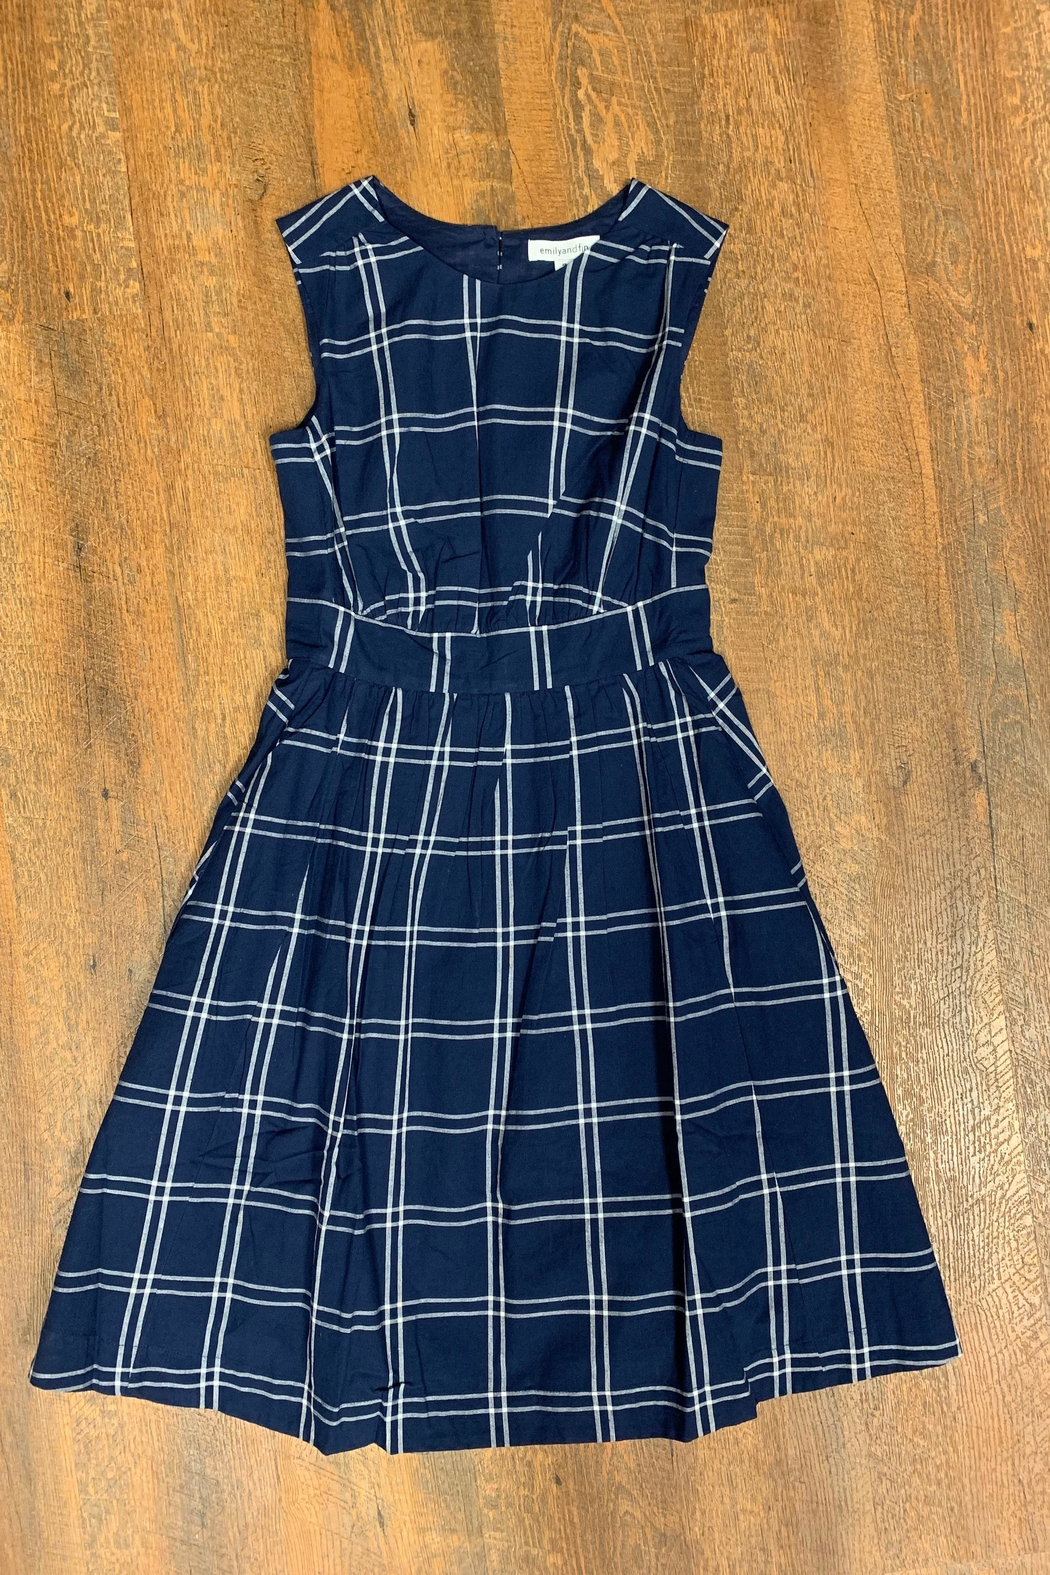 Emily & Fin Blue Plaid Dress - Main Image